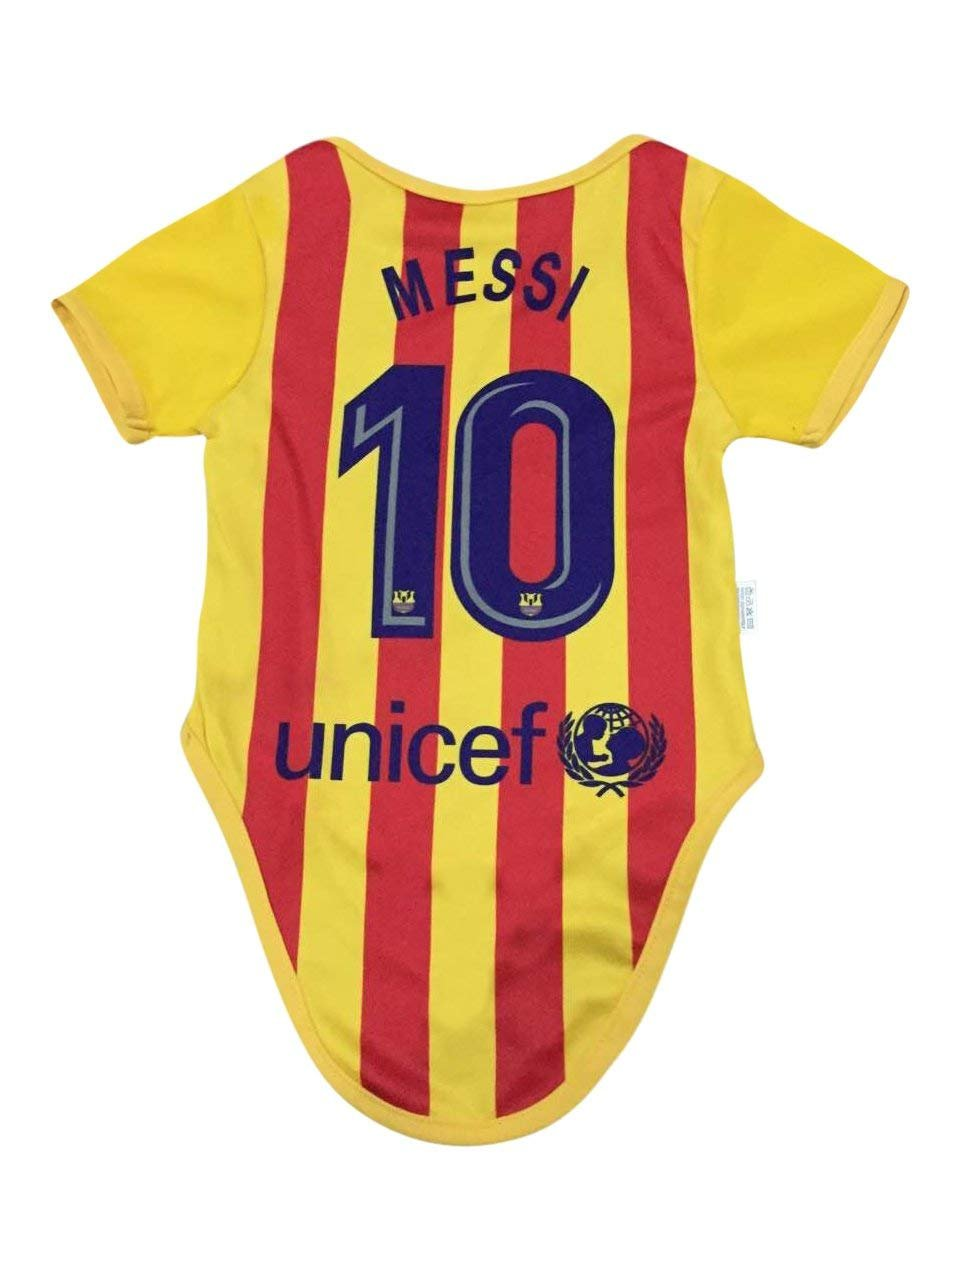 new arrival bb39b f4c5d Details about Leo Messi #10 Barcelona Soccer Jersey Baby Infant & Toddler  Rompers Body 2-Pack